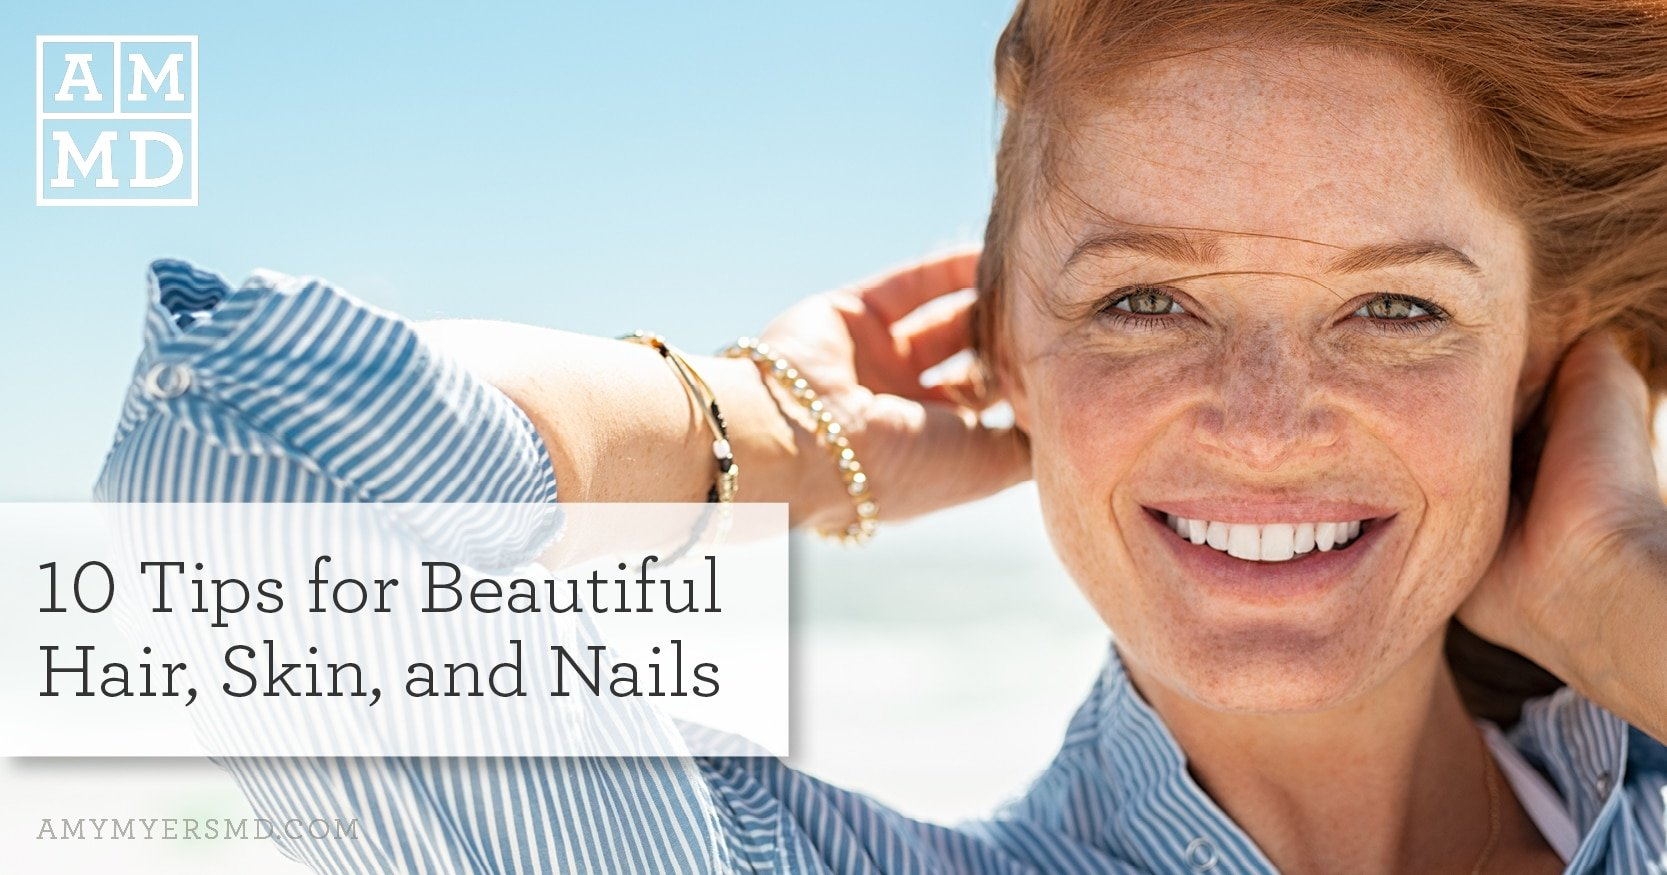 Tips for Beautiful Hair, Skin, and Nails - Featured Image - Amy Myers MD